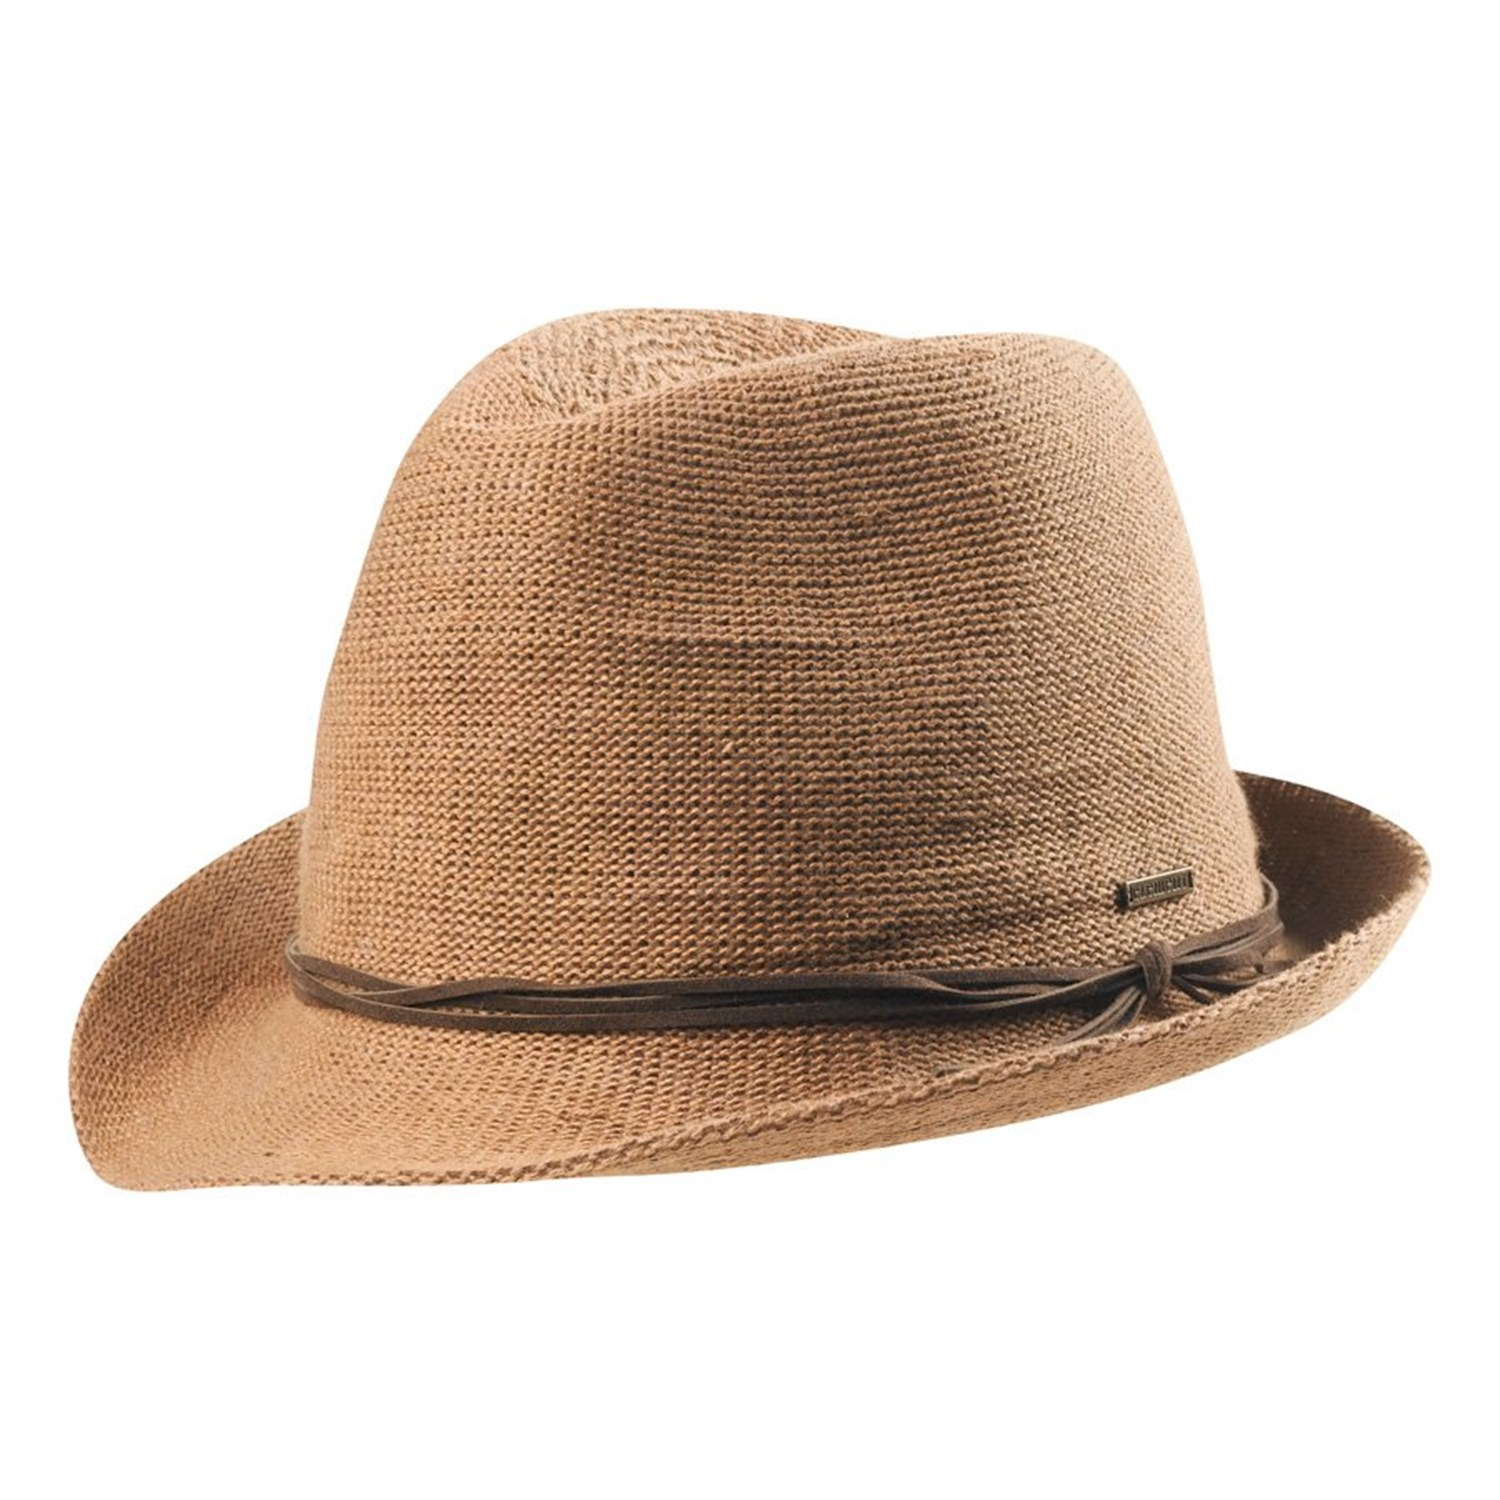 element elsa fedora hat s evo